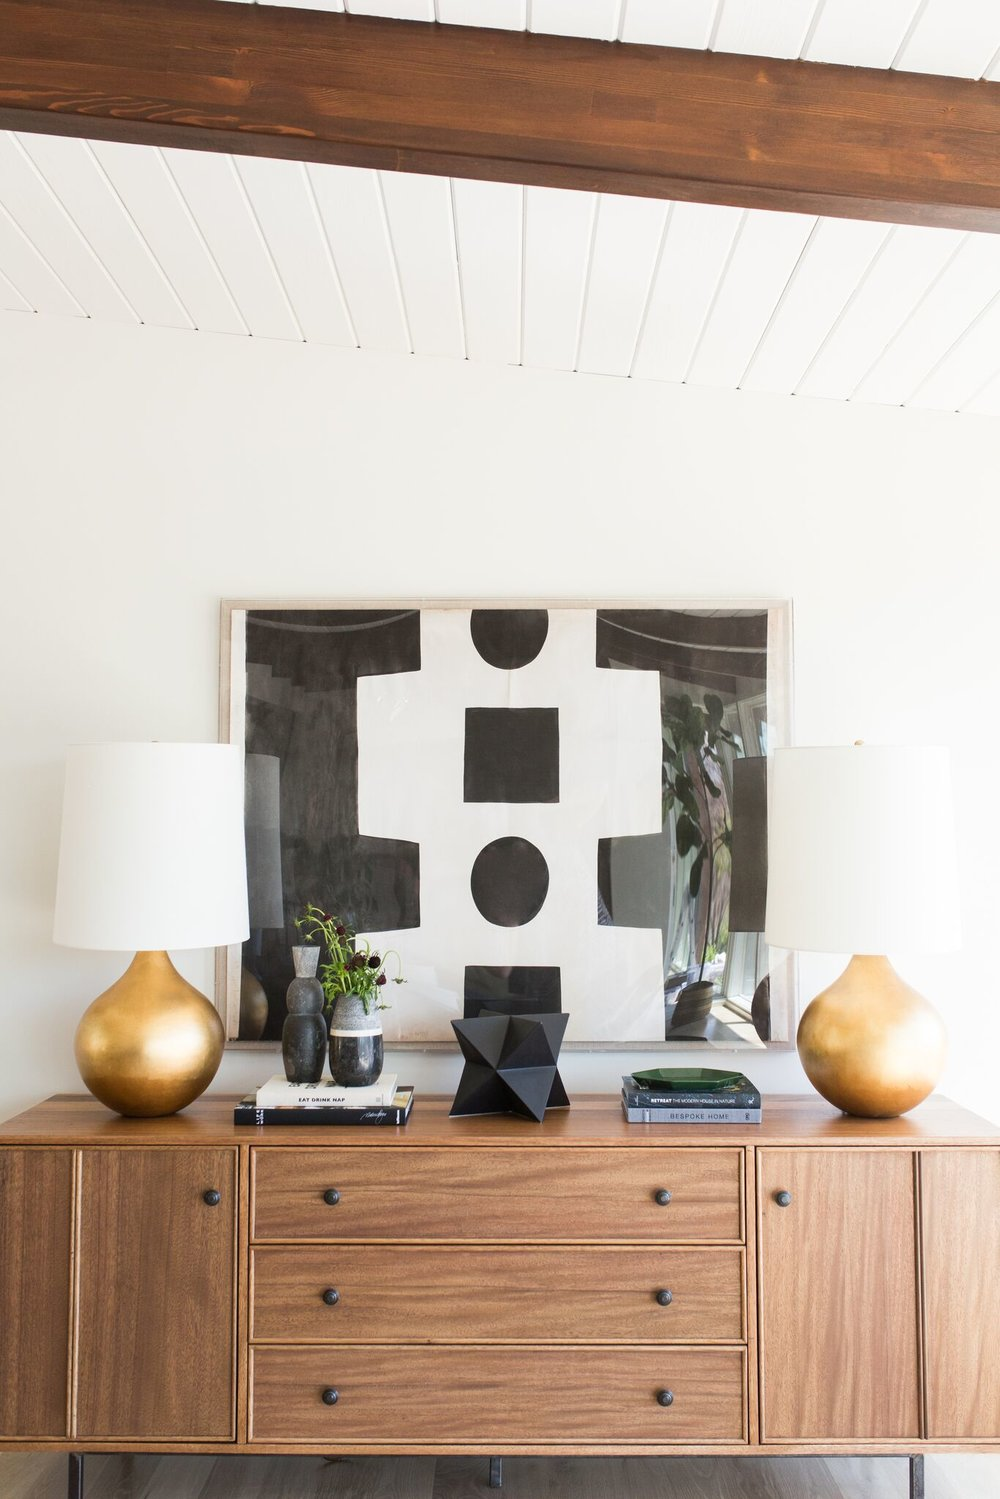 20Mid-Century+Home+with+Modern+Artwork+and+Natural+Wood+Cabinet.jpg